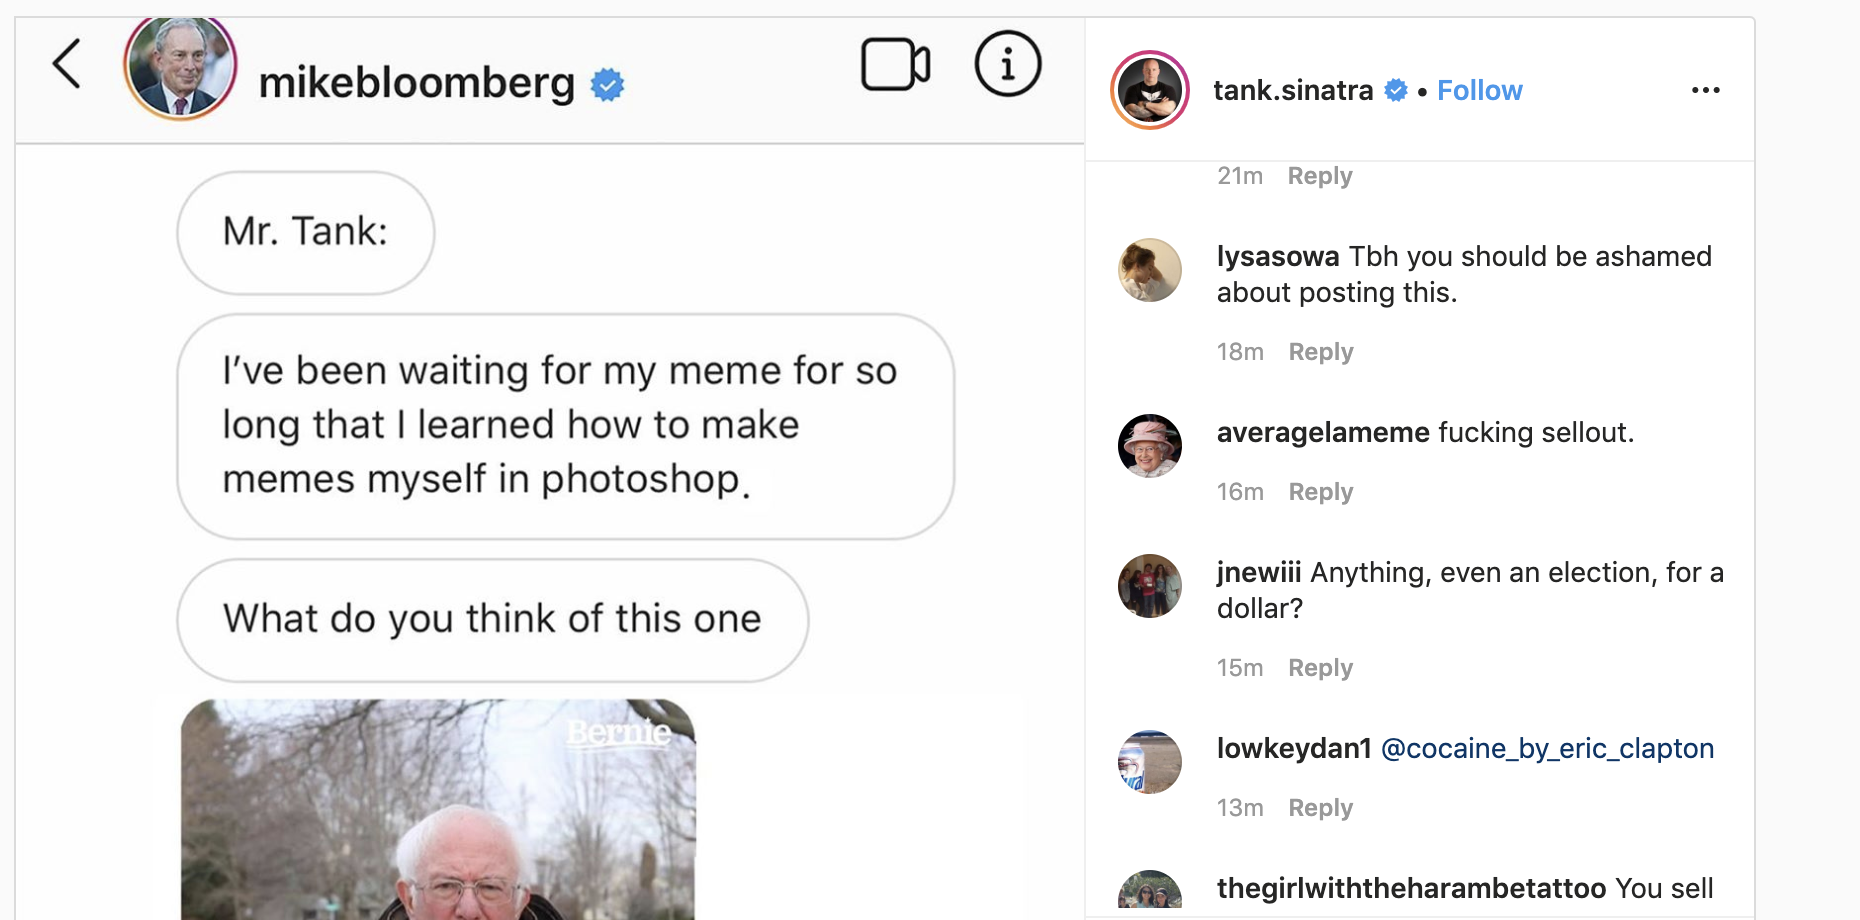 Bloomberg's Instagram meme ad campaign is backfiring